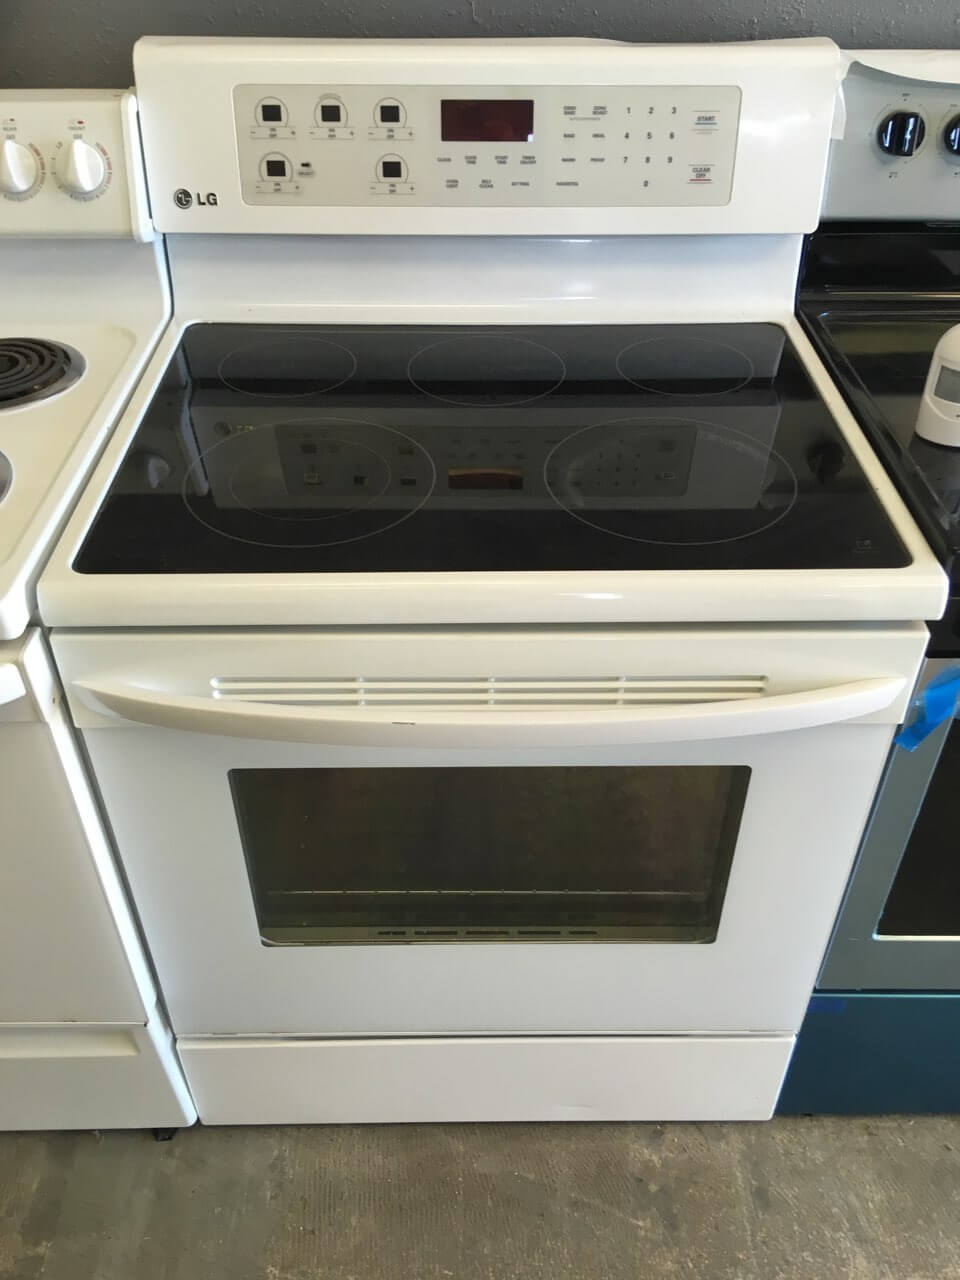 Home Cooking Lg White Gl Top Range With Convection Bake And Self Cleaning